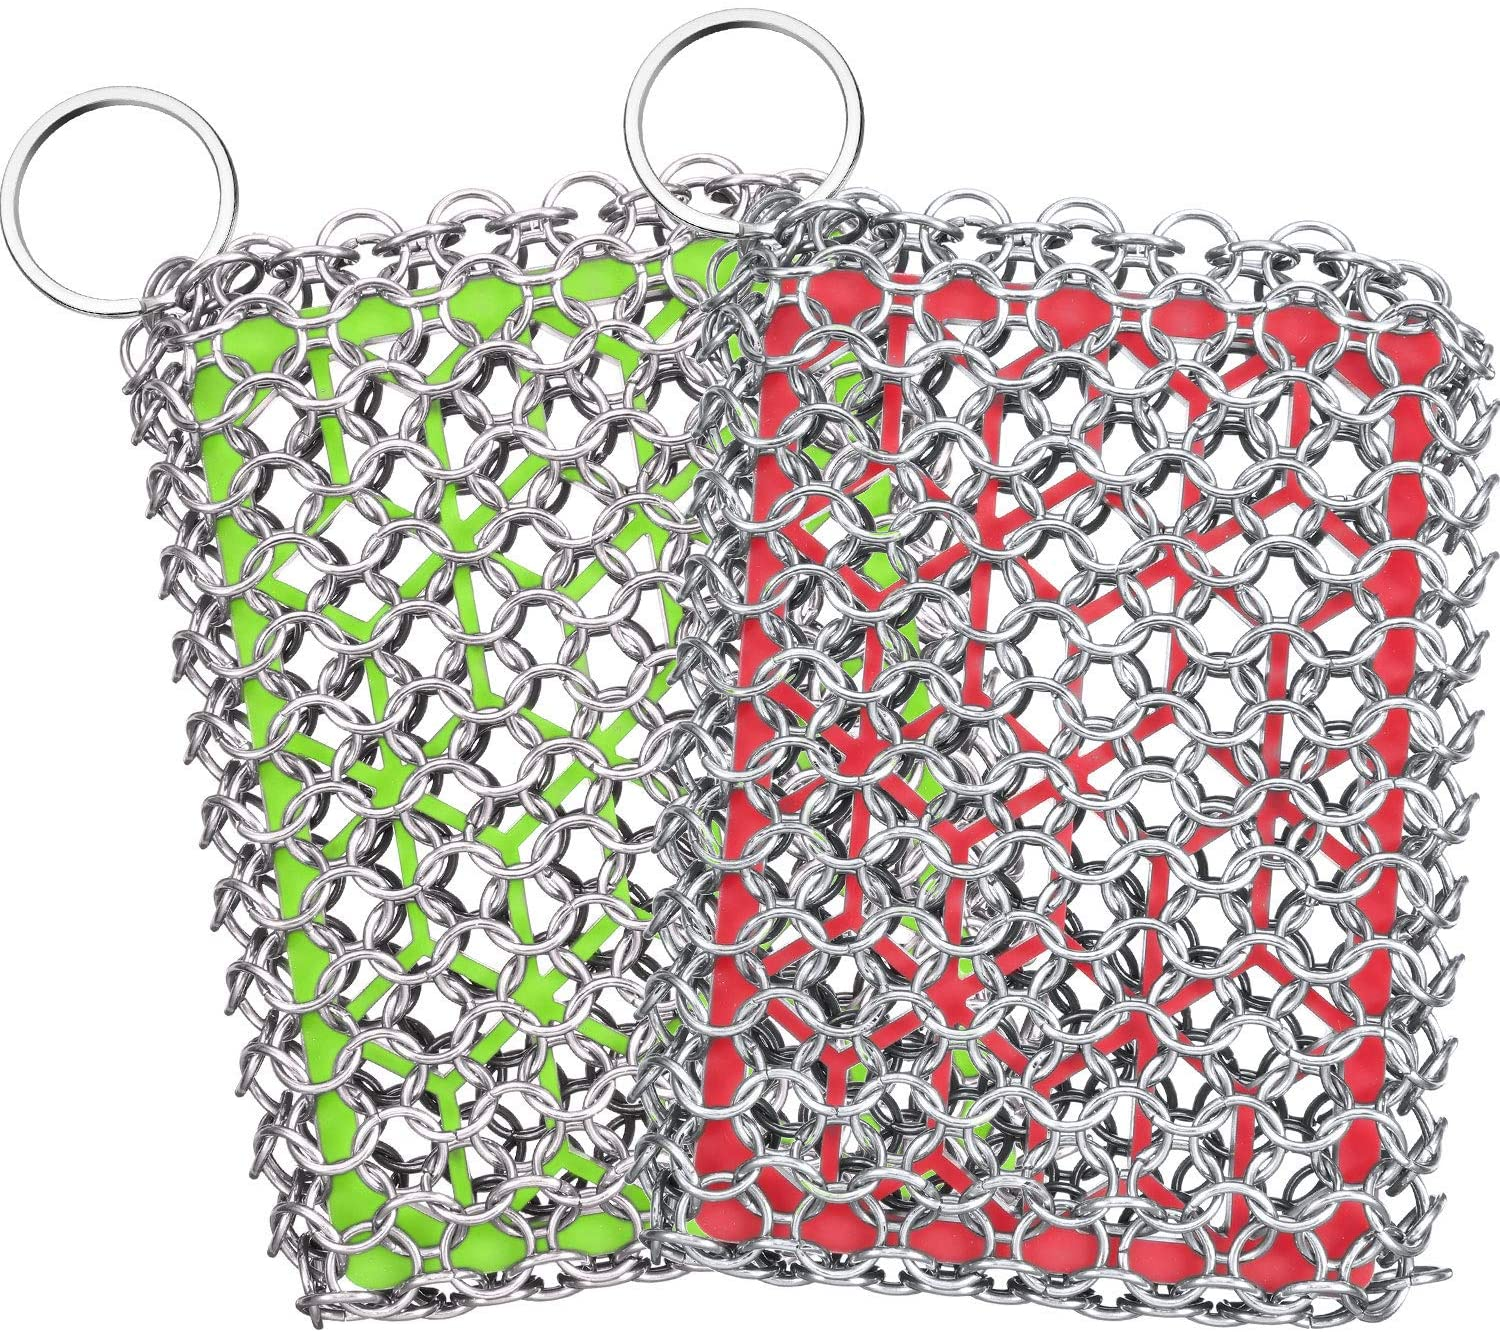 2 Pieces Chainmail Scrubbers Skillet Cast Iron Cleaner Stainless Steel Scrubbers with Silicone for Kitchen Cookware BBQ Tools Green and Red: Health & Personal Care